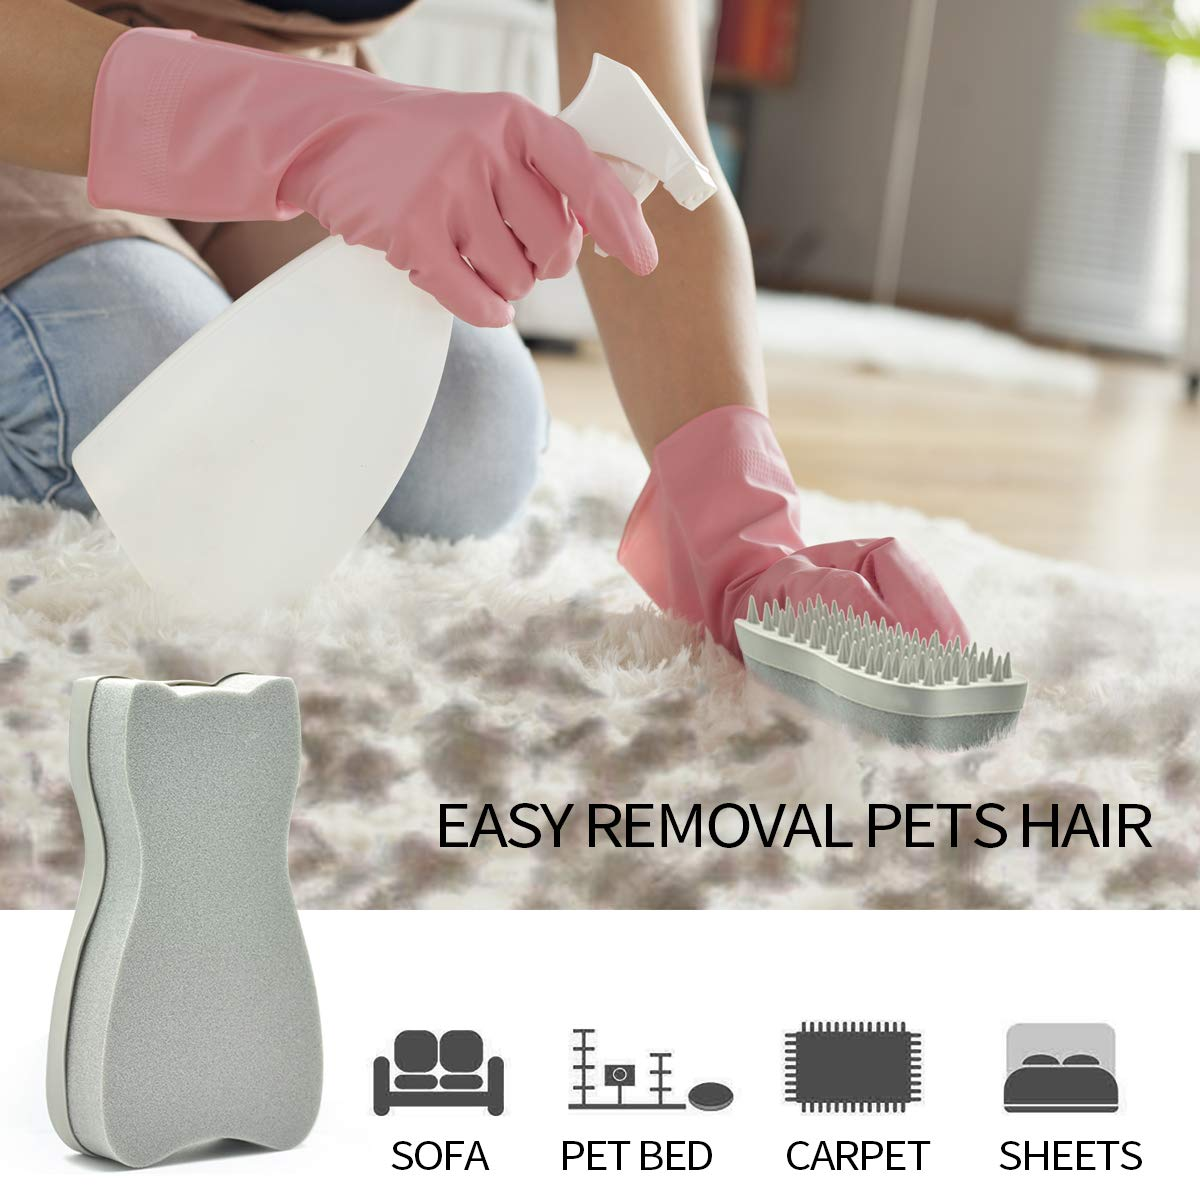 YOOHUG Pet Brush Effectively Reduces Shedding Slicker Grooming Brushes Massage for Dogs and Cats Easy to Clean Shedding Grooming Brush Loose Hair with Minimal Effort and Comfort